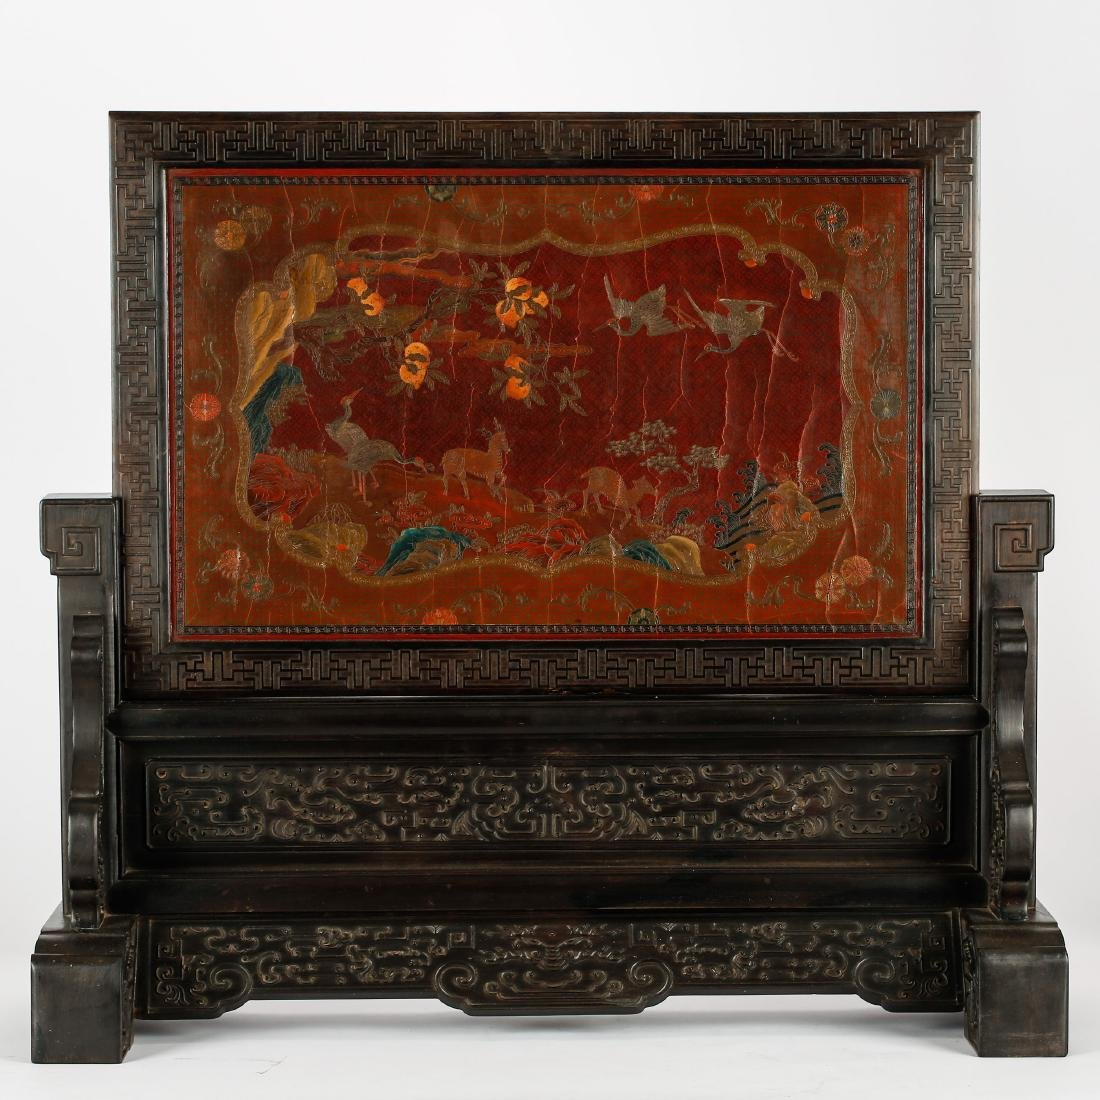 CHINESE LACQUER WOOD ZITAN TABLE SCREEN